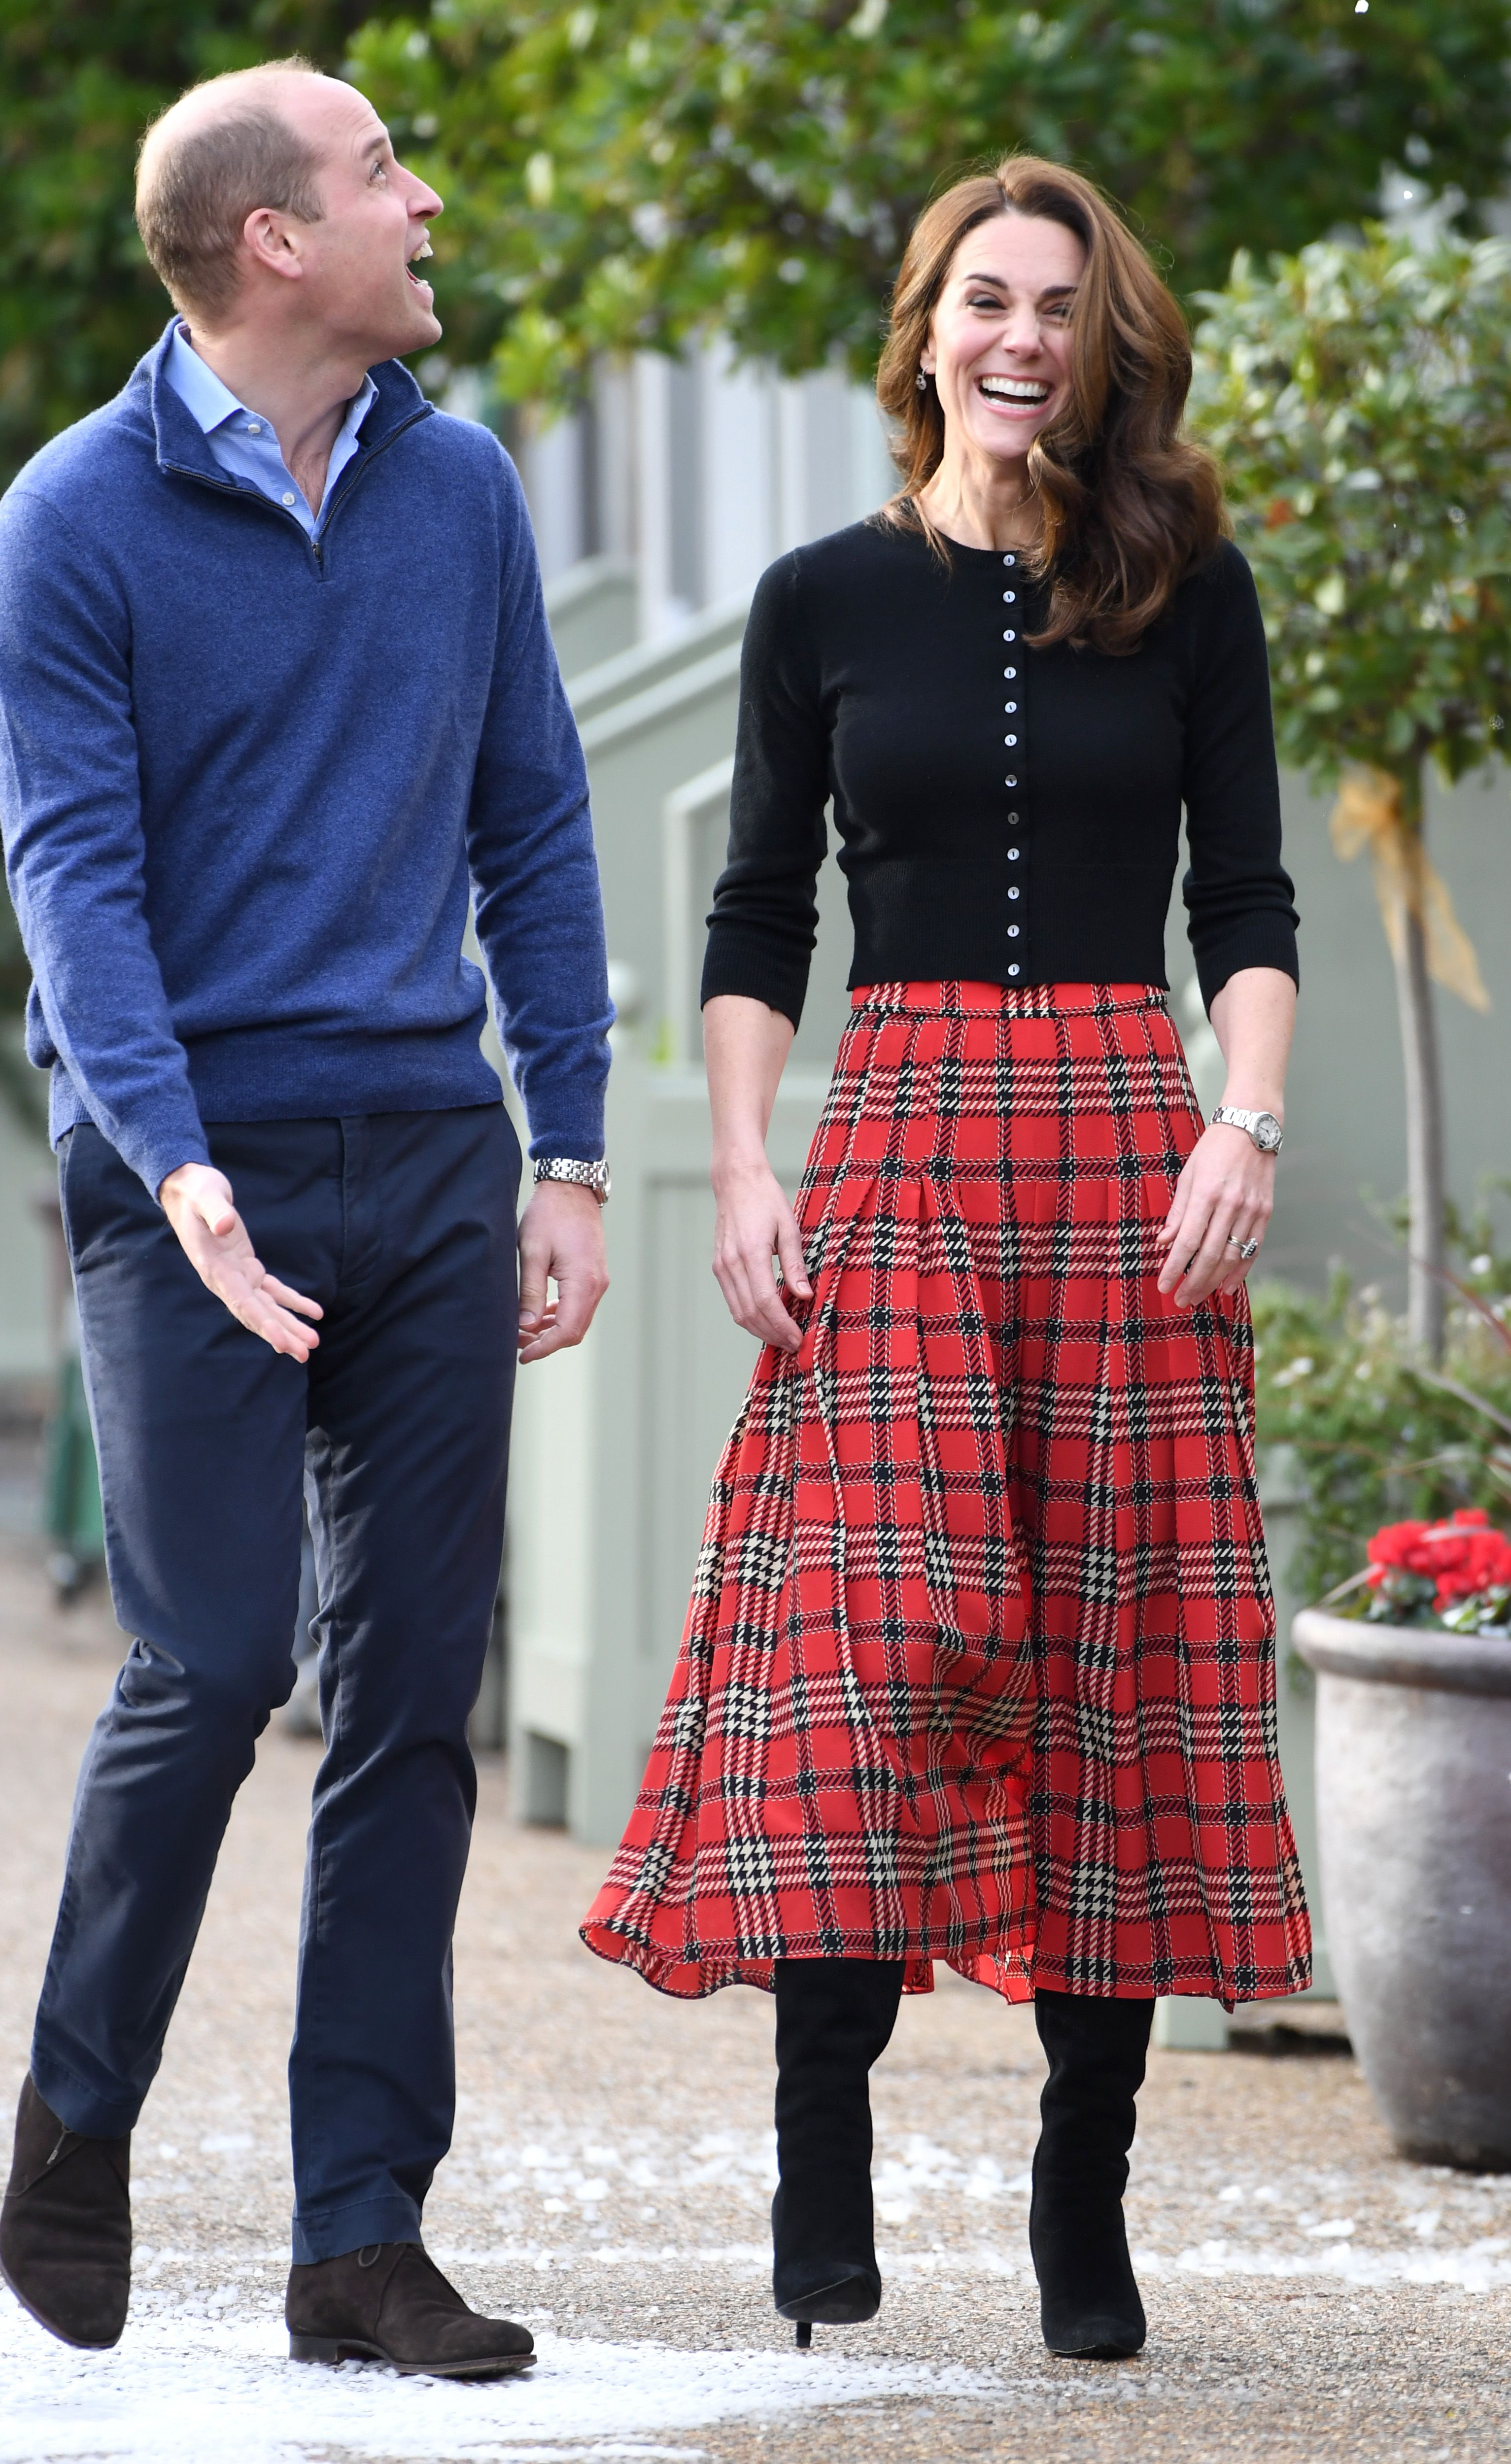 9c12ff1ca The Duke and Duchess of Cambridge hosted a #holiday party for military  families at Kensington Palace today, and #KateMiddleton wore  #EmiliaWickstead for the ...